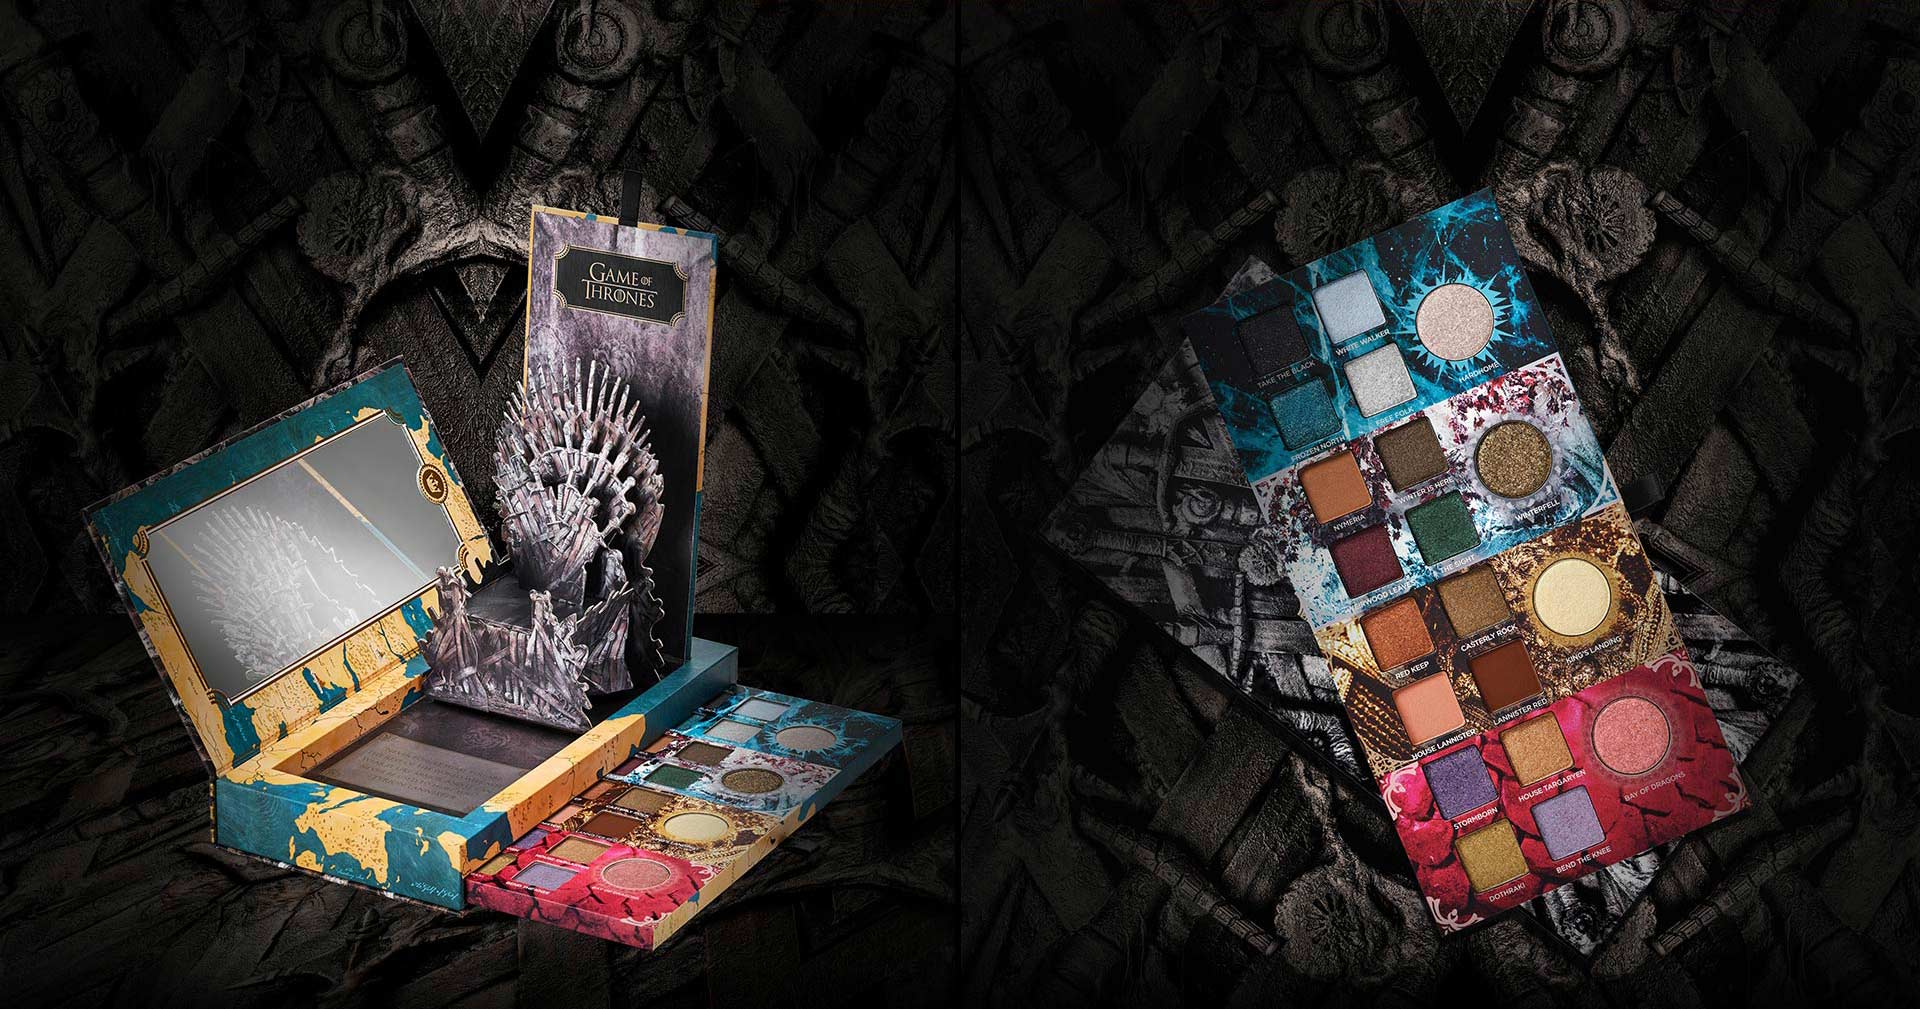 Risultati immagini per urban decay game of thrones